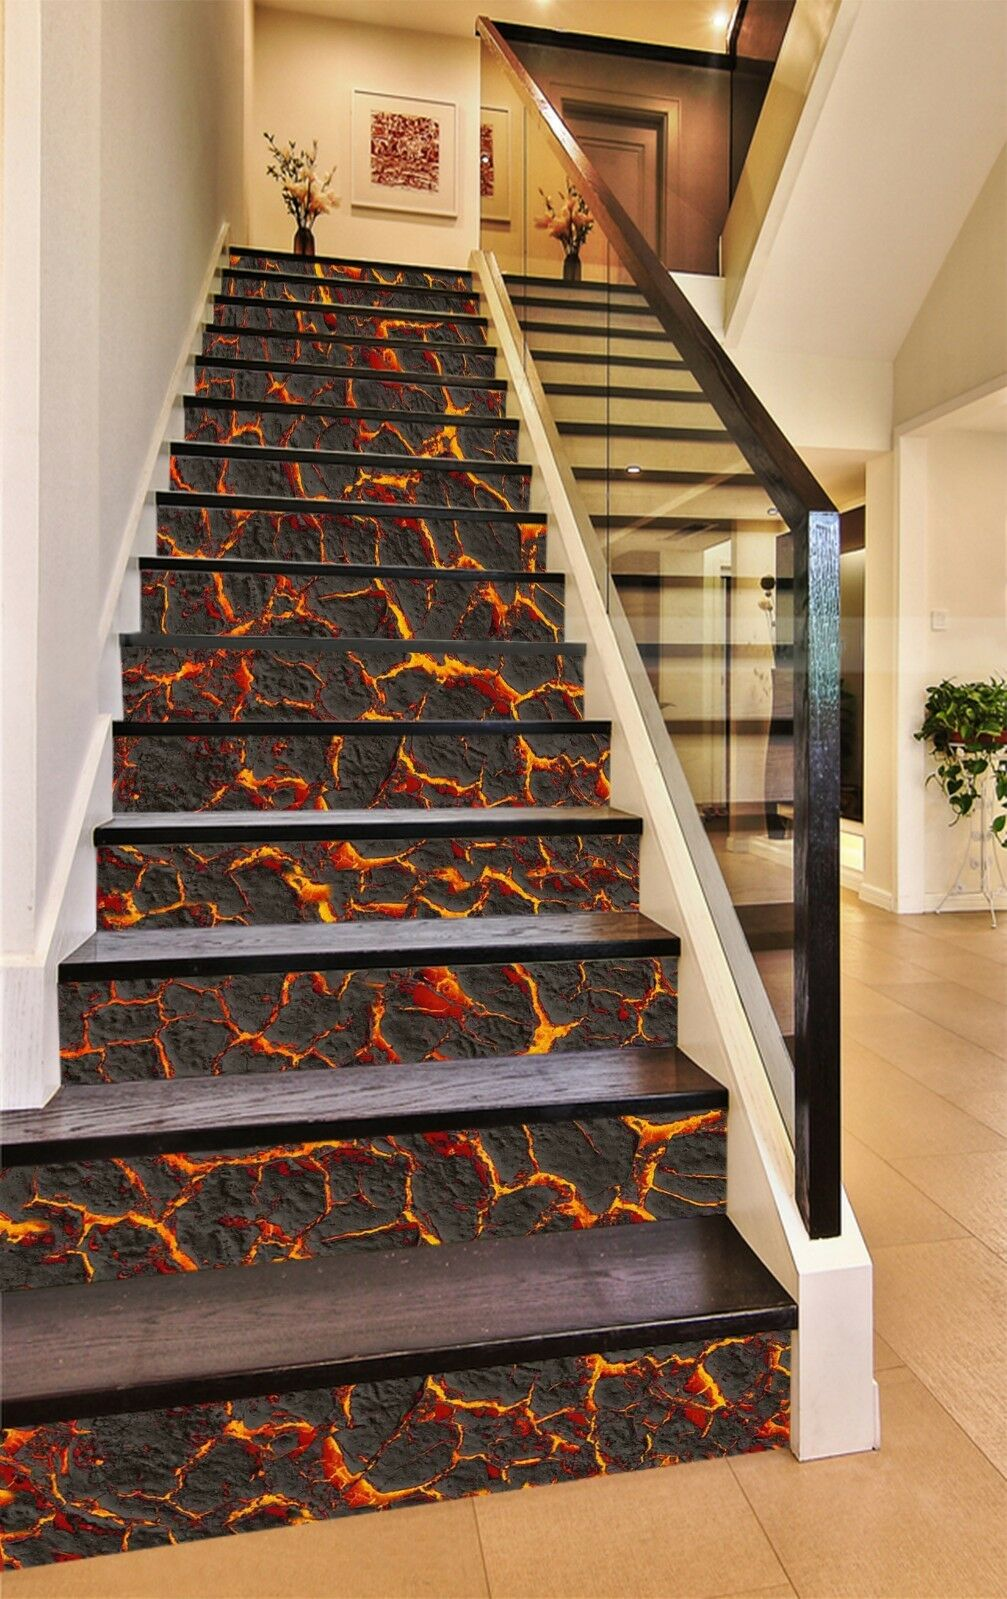 3D Flame Adorn Stair Risers Decoration Photo Mural Vinyl Decal Wallpaper UK